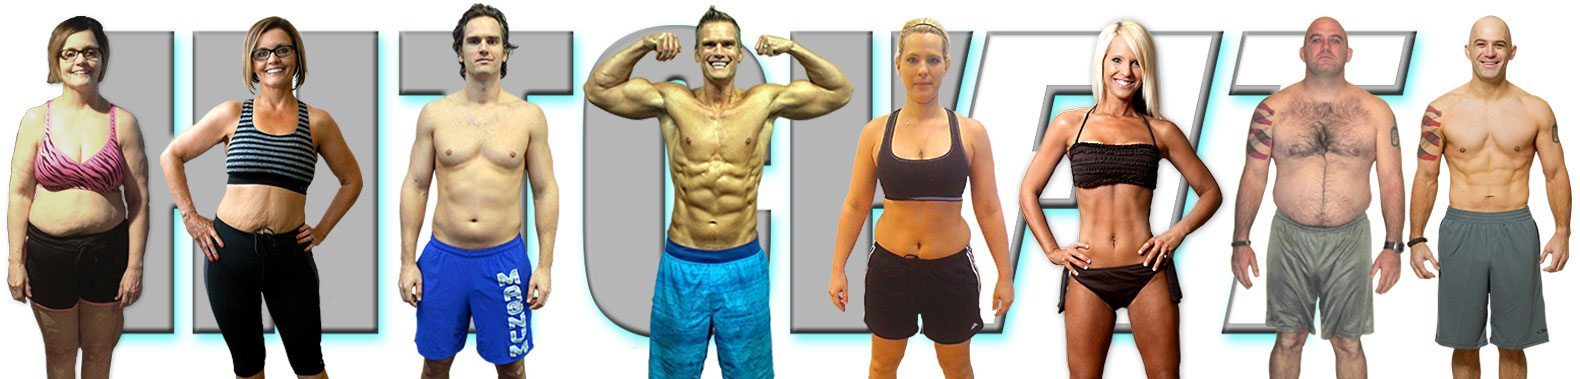 couples weight loss couples weight loss program weight loss